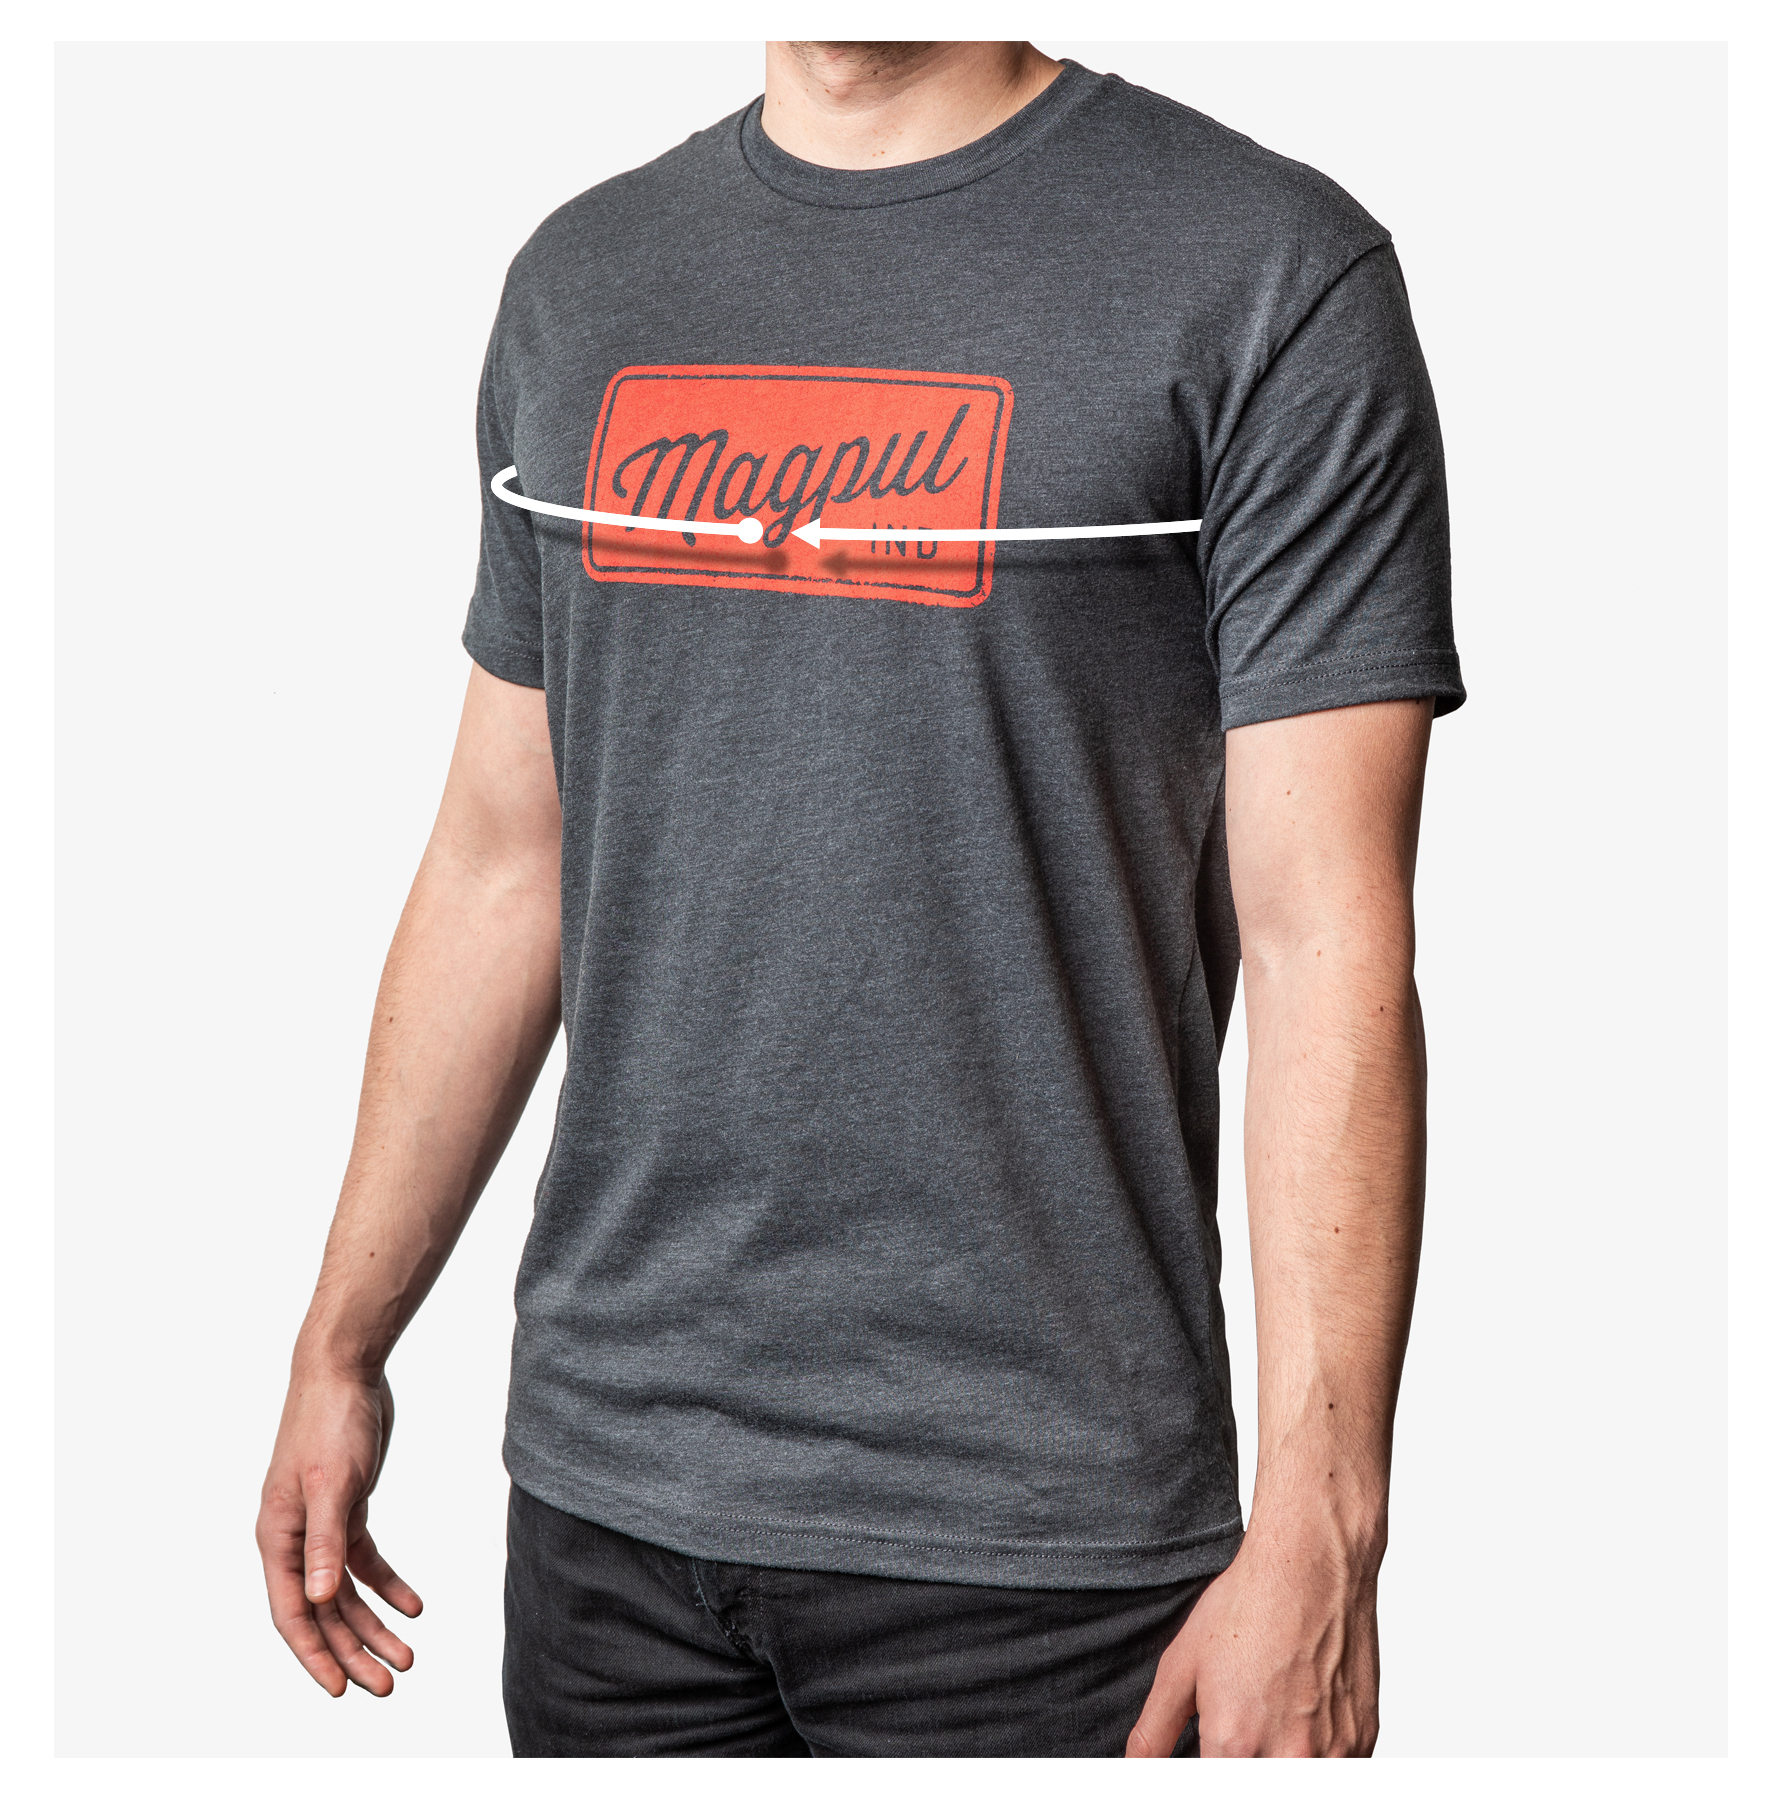 Magpul Mens T-shirt showing where to measure for size